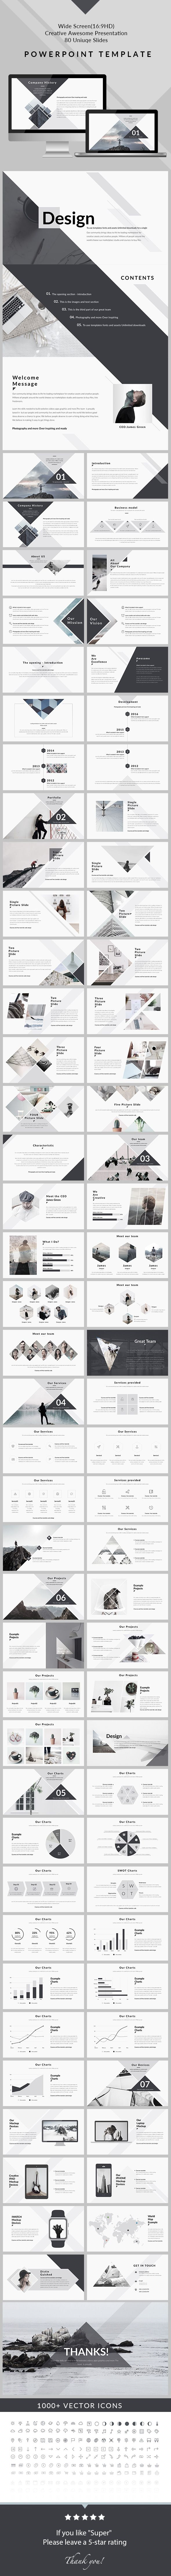 Design - Clean & Creative PowerPoint Presentation - Creative PowerPoint Templates